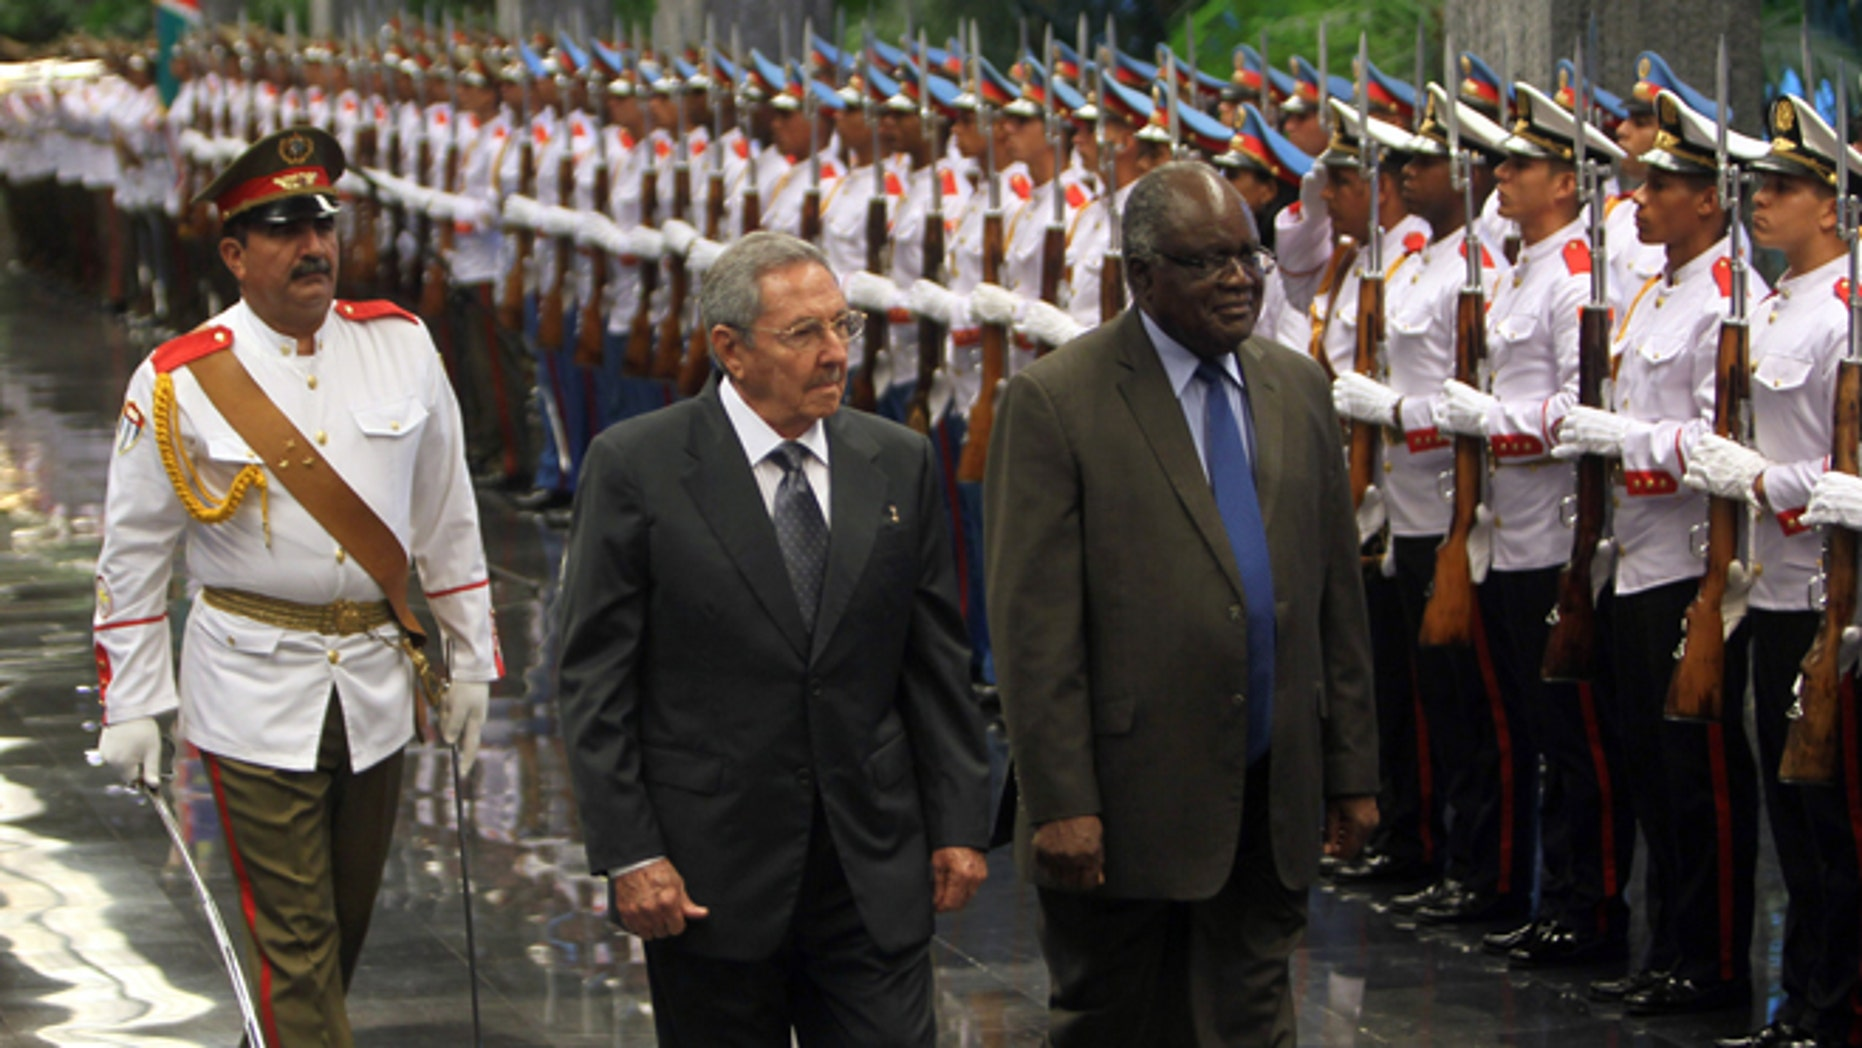 Cuba's President Raul Castro, center, and Namibia's President Hifikepunye Pohamba, right, review an honor guard in Havana, Cuba, Monday, Sept 29, 2014. Pohamba is on a three-day official visit to Cuba. (AP Photo/Ismael Francisco, Cubadebate)